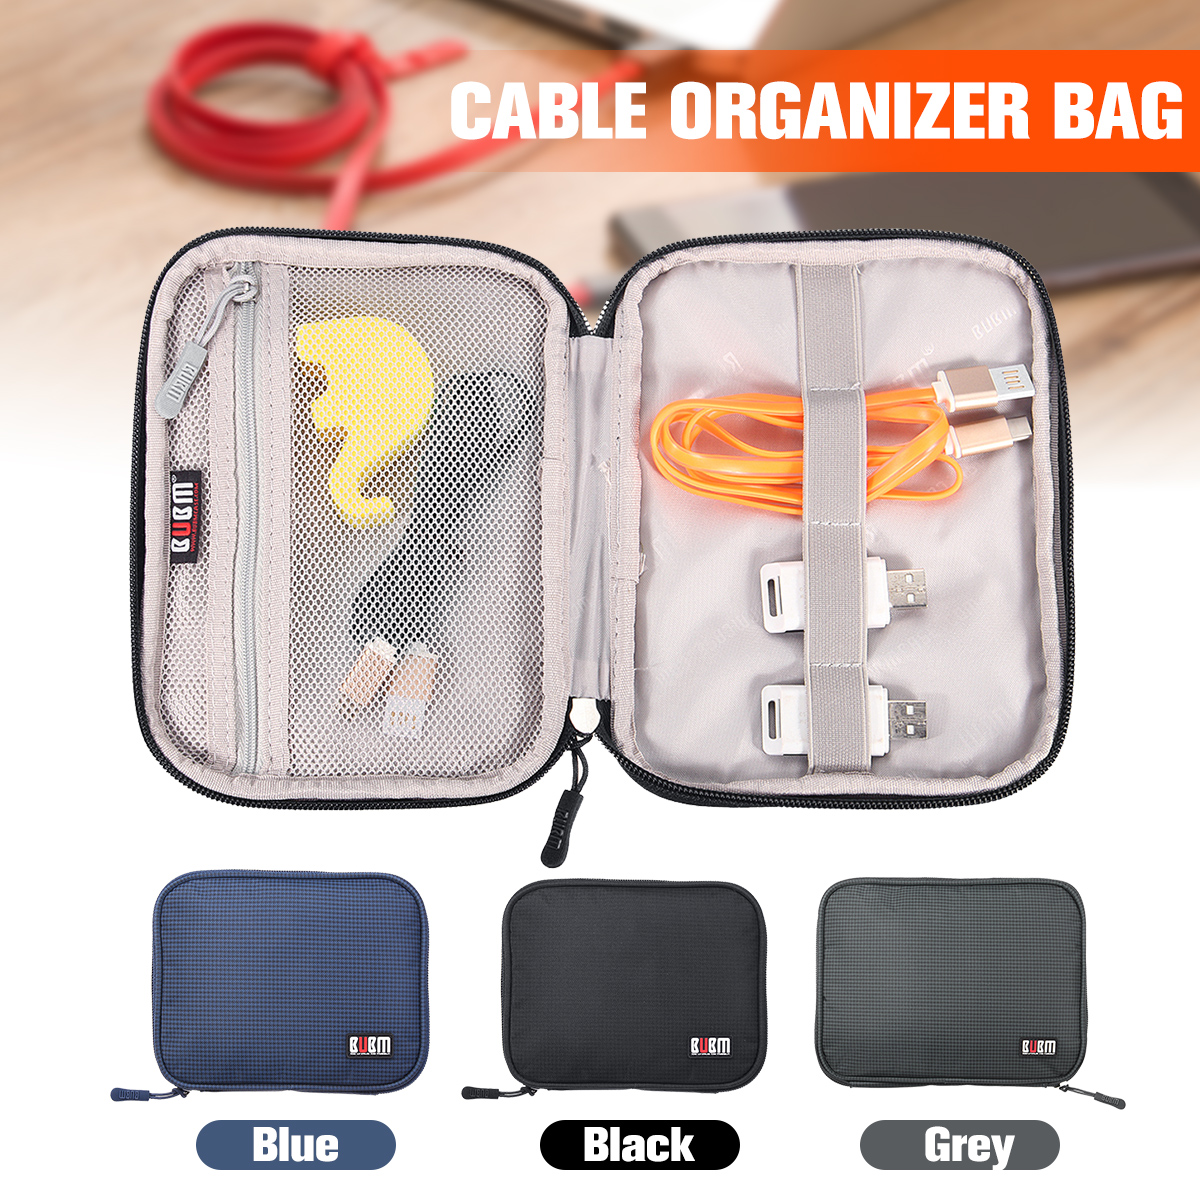 Travel Gadget Cable Organizer Storage Bag Digital Electronic Accessories Cable Pouch Phone Charger Power Bank Organization Bag